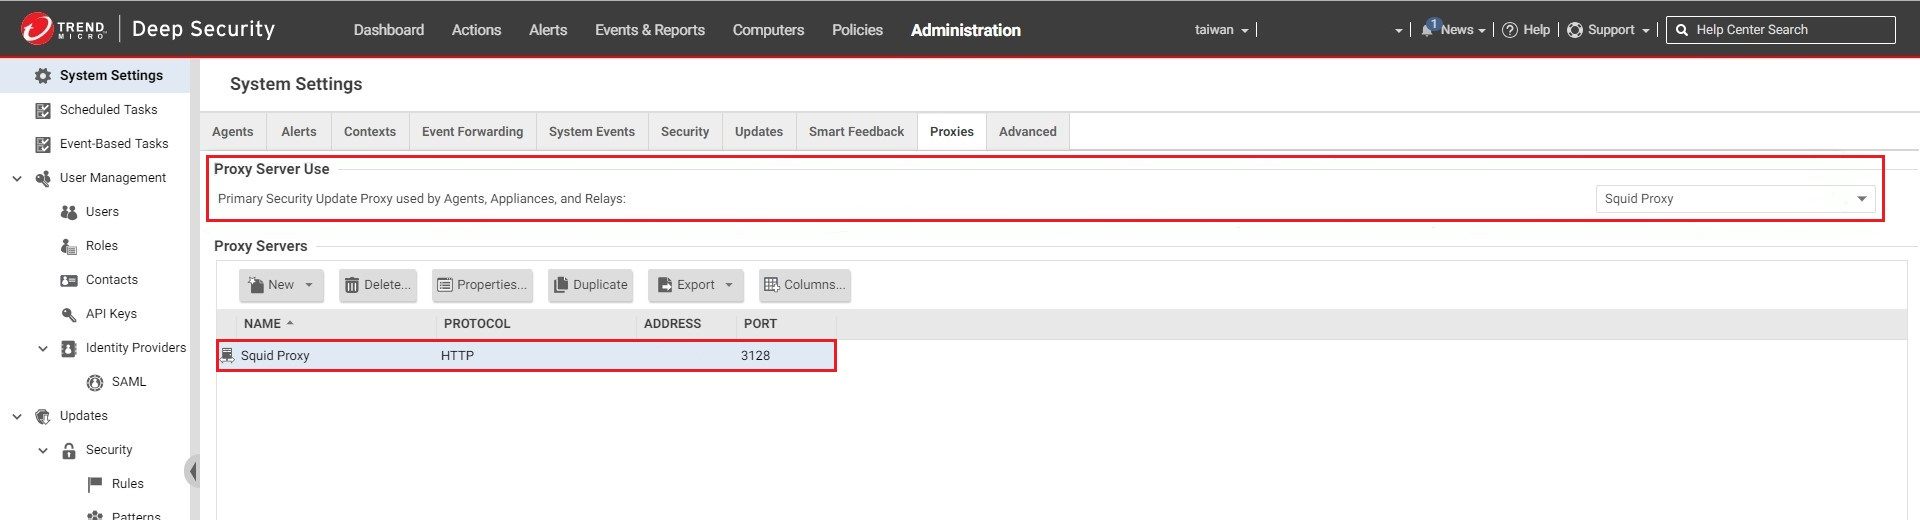 Register the Squid Proxy in Deep Security as a Service Manager